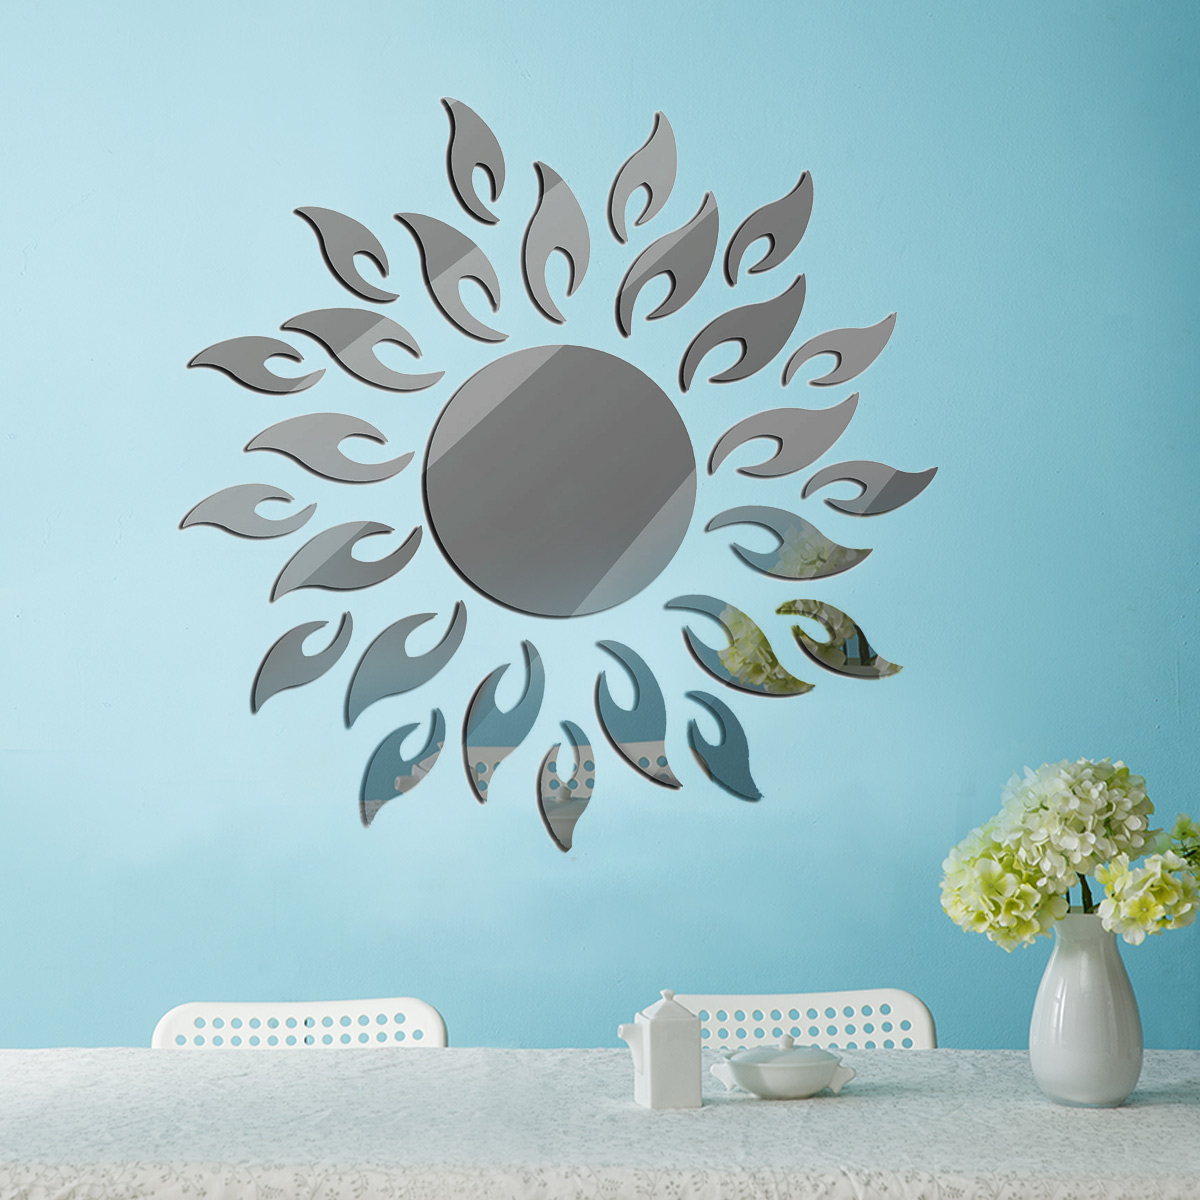 Removable 3D Sunshine Sun Flower Decorative Mirror Wall Sticker Decal Vinyl for Home Decoration DIY Mirrors Art Decor